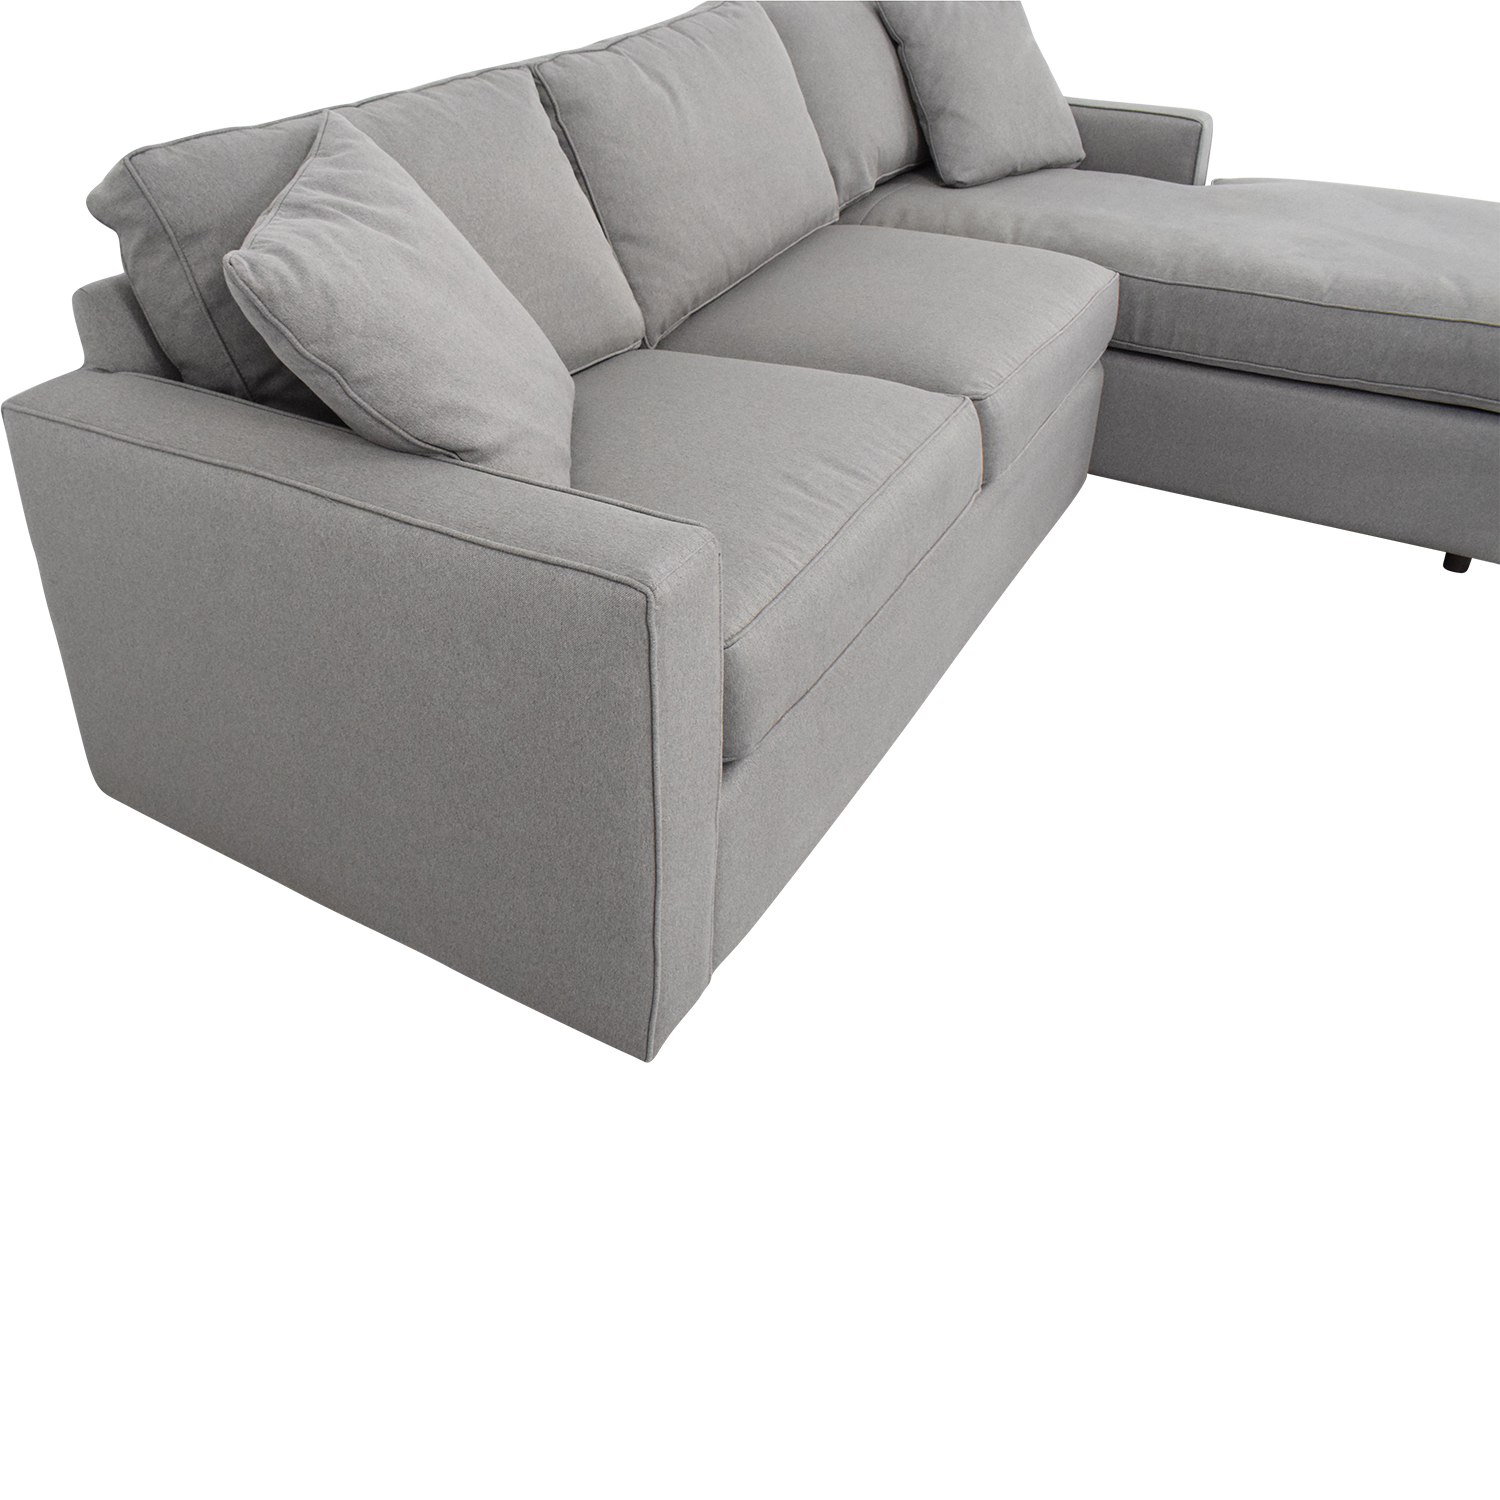 shop Room & Board Room & Board York Sofa with Chaise online